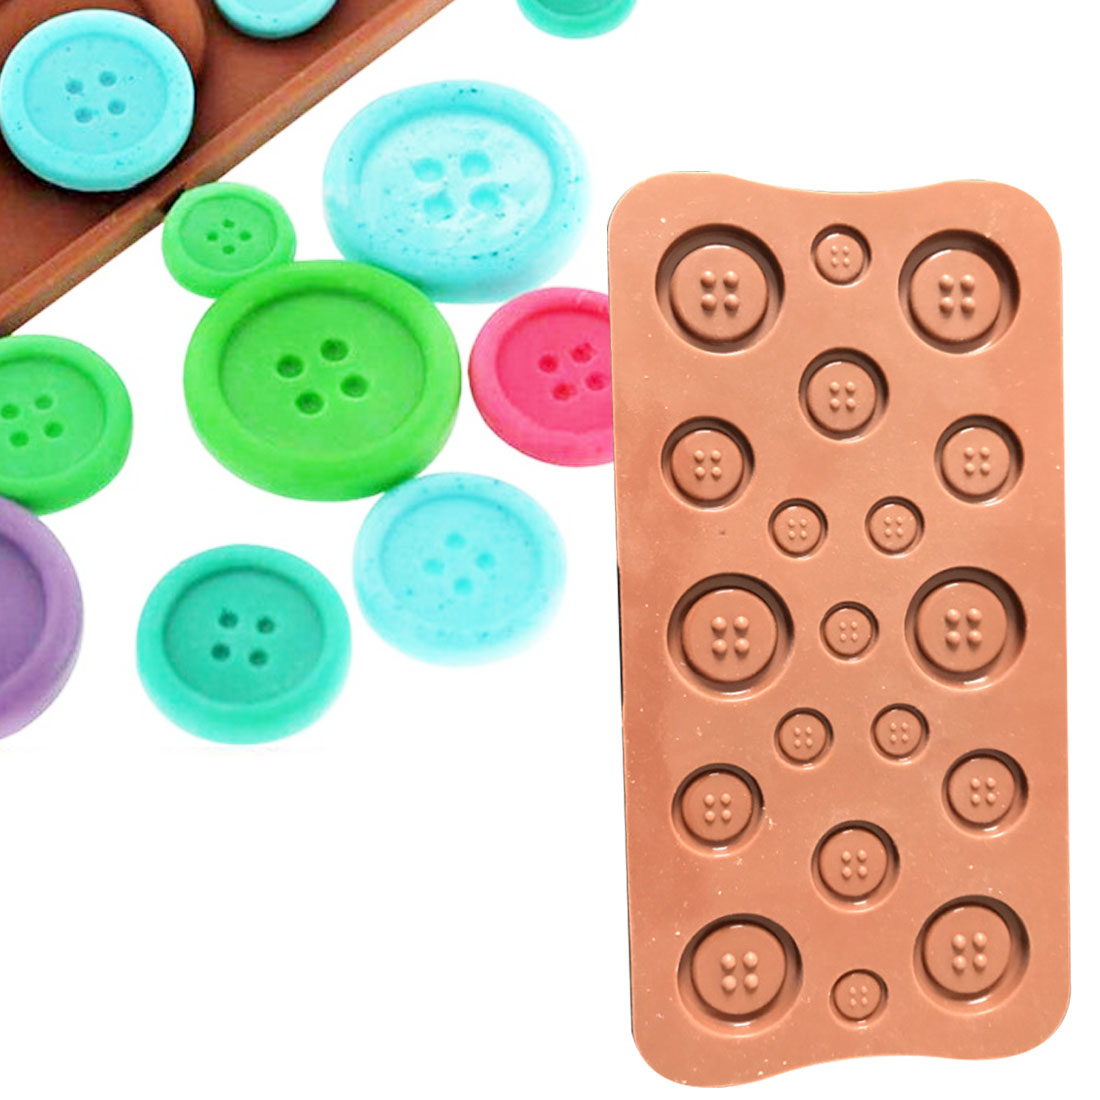 Cake Silicone mold Shape 3D Silicone Fruit Chocolate Mold Candy Cookie Baking Fondant Mold Cake Decoration Tools 2 Colors